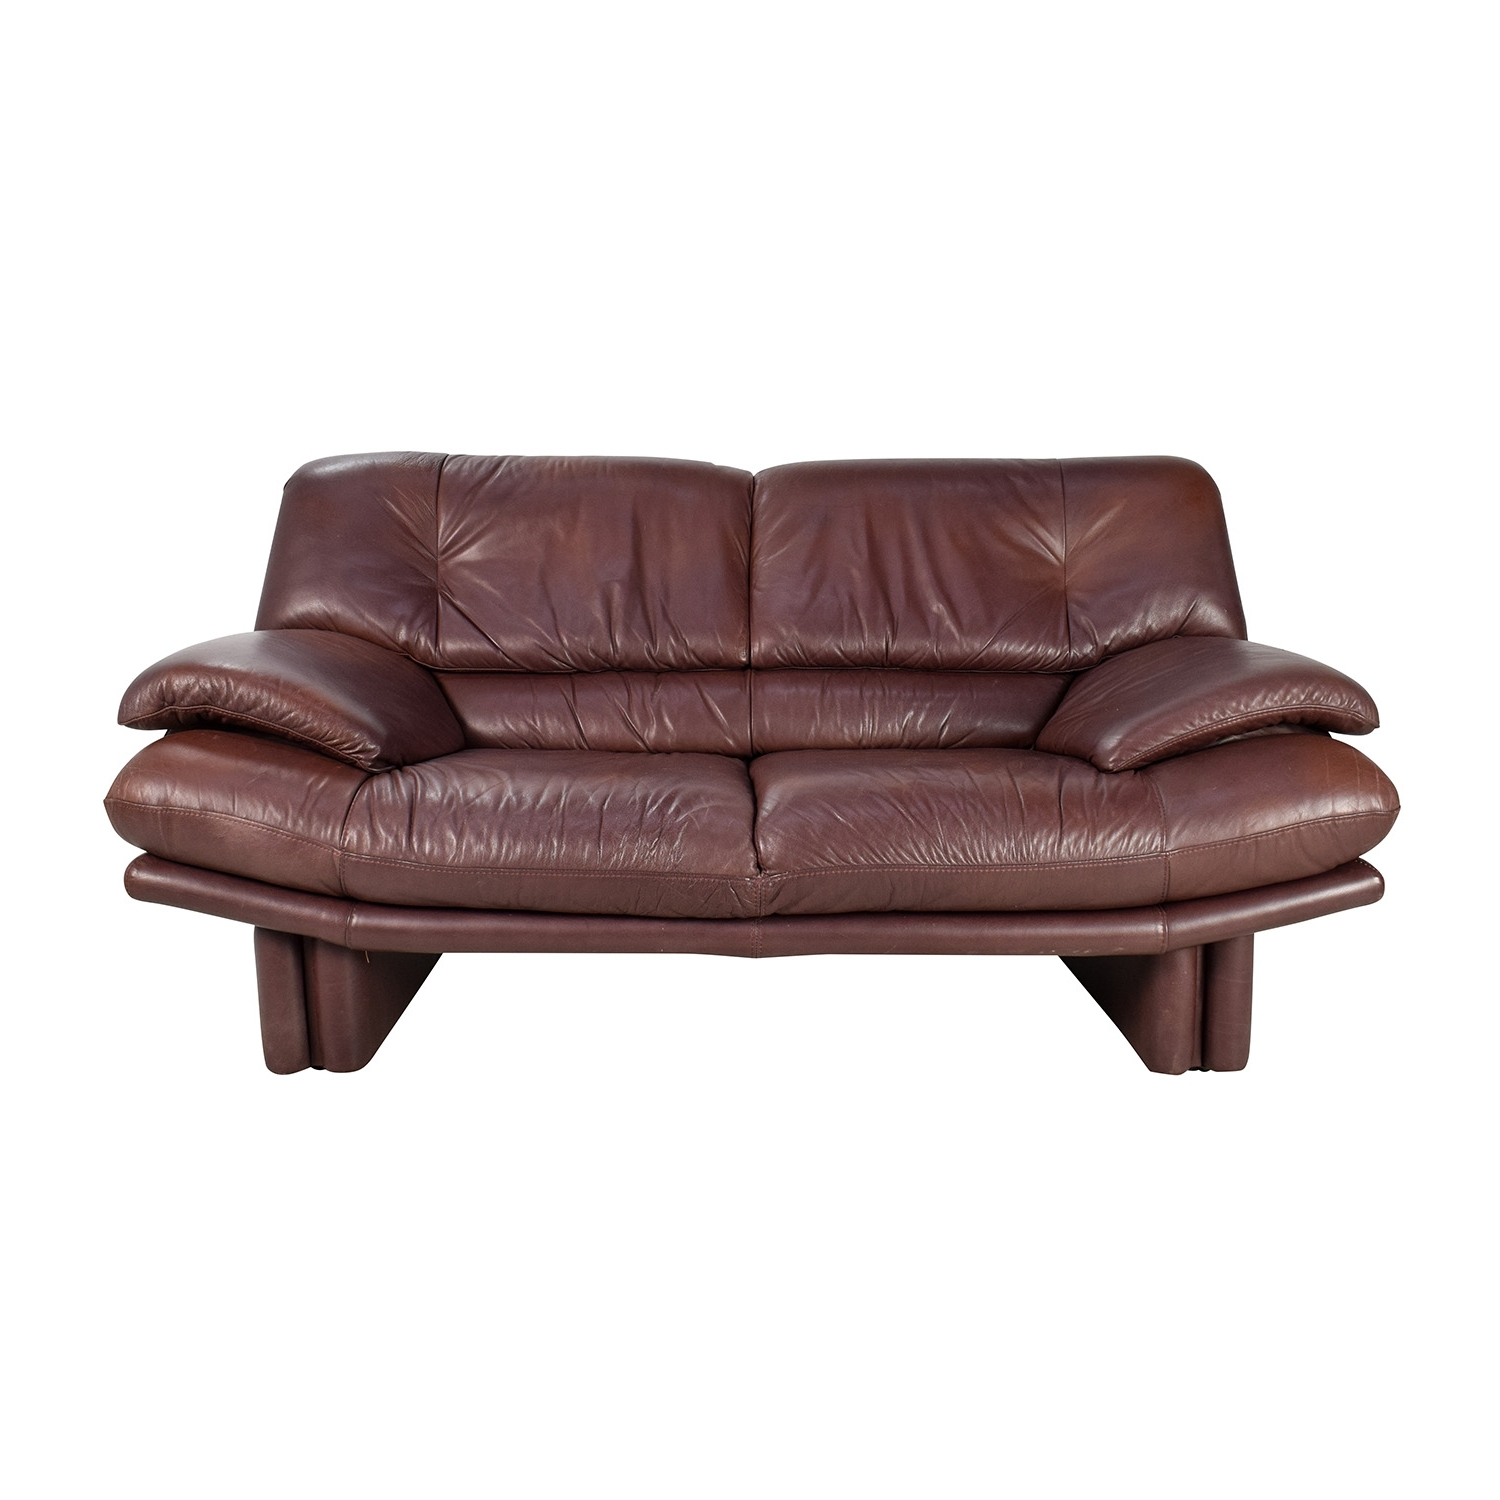 [%67% Off – Maurice Villency Maurice Villency Brown Leather Sofa / Sofas Intended For Popular Canterbury Leather Sofas|Canterbury Leather Sofas Intended For 2018 67% Off – Maurice Villency Maurice Villency Brown Leather Sofa / Sofas|Latest Canterbury Leather Sofas Throughout 67% Off – Maurice Villency Maurice Villency Brown Leather Sofa / Sofas|Well Liked 67% Off – Maurice Villency Maurice Villency Brown Leather Sofa / Sofas Within Canterbury Leather Sofas%] (View 1 of 20)